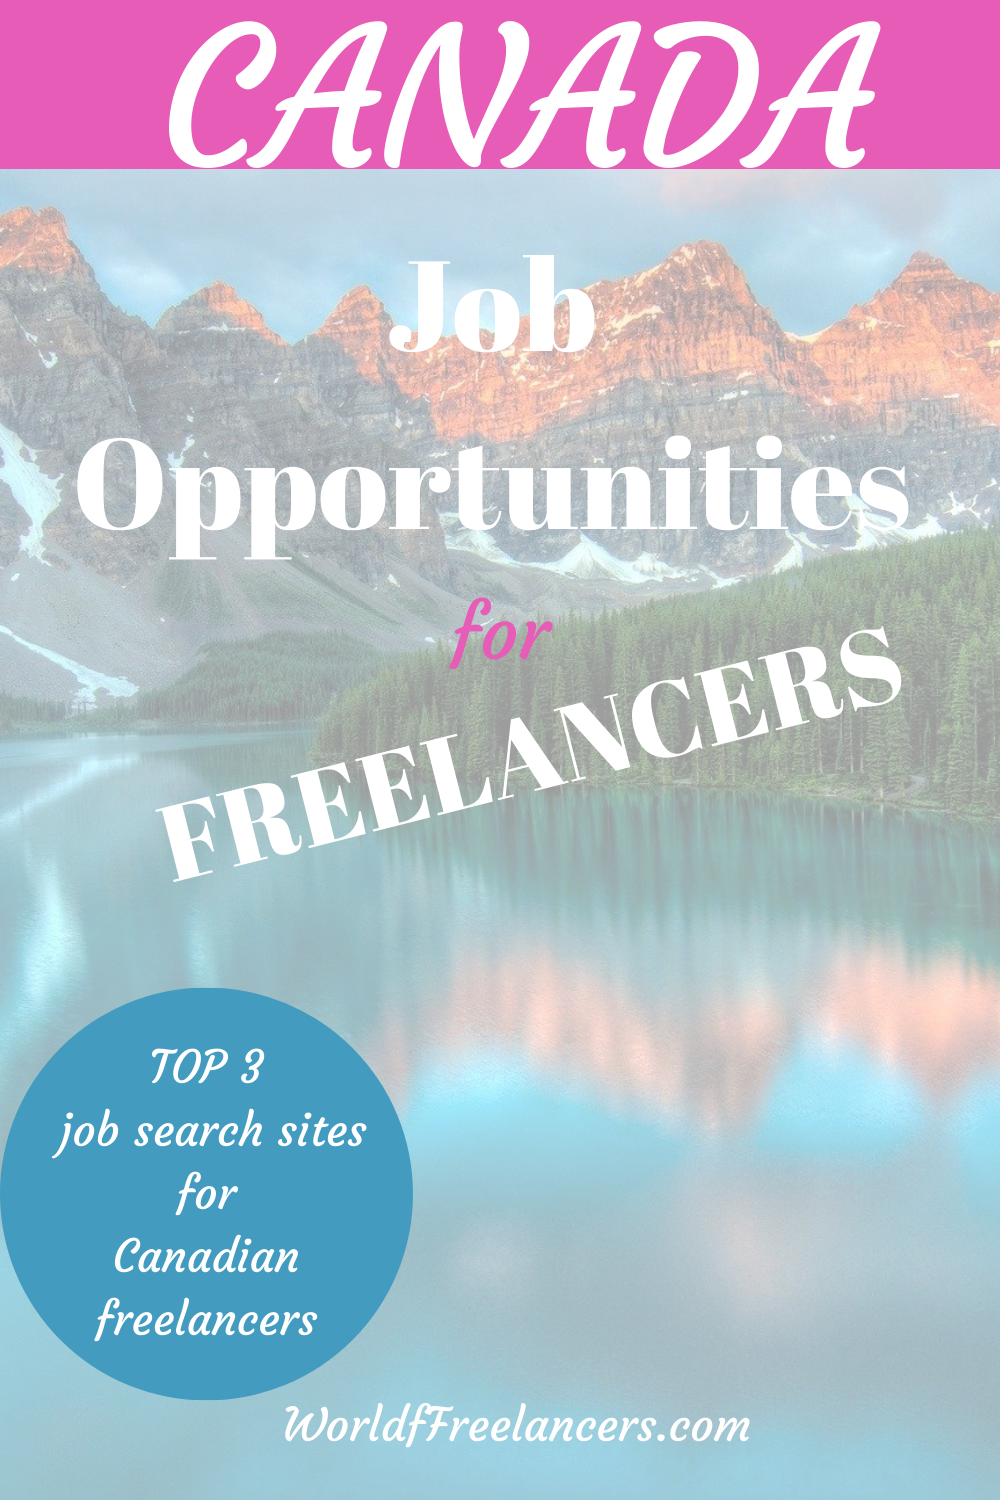 Canada job opportunities for freelancers